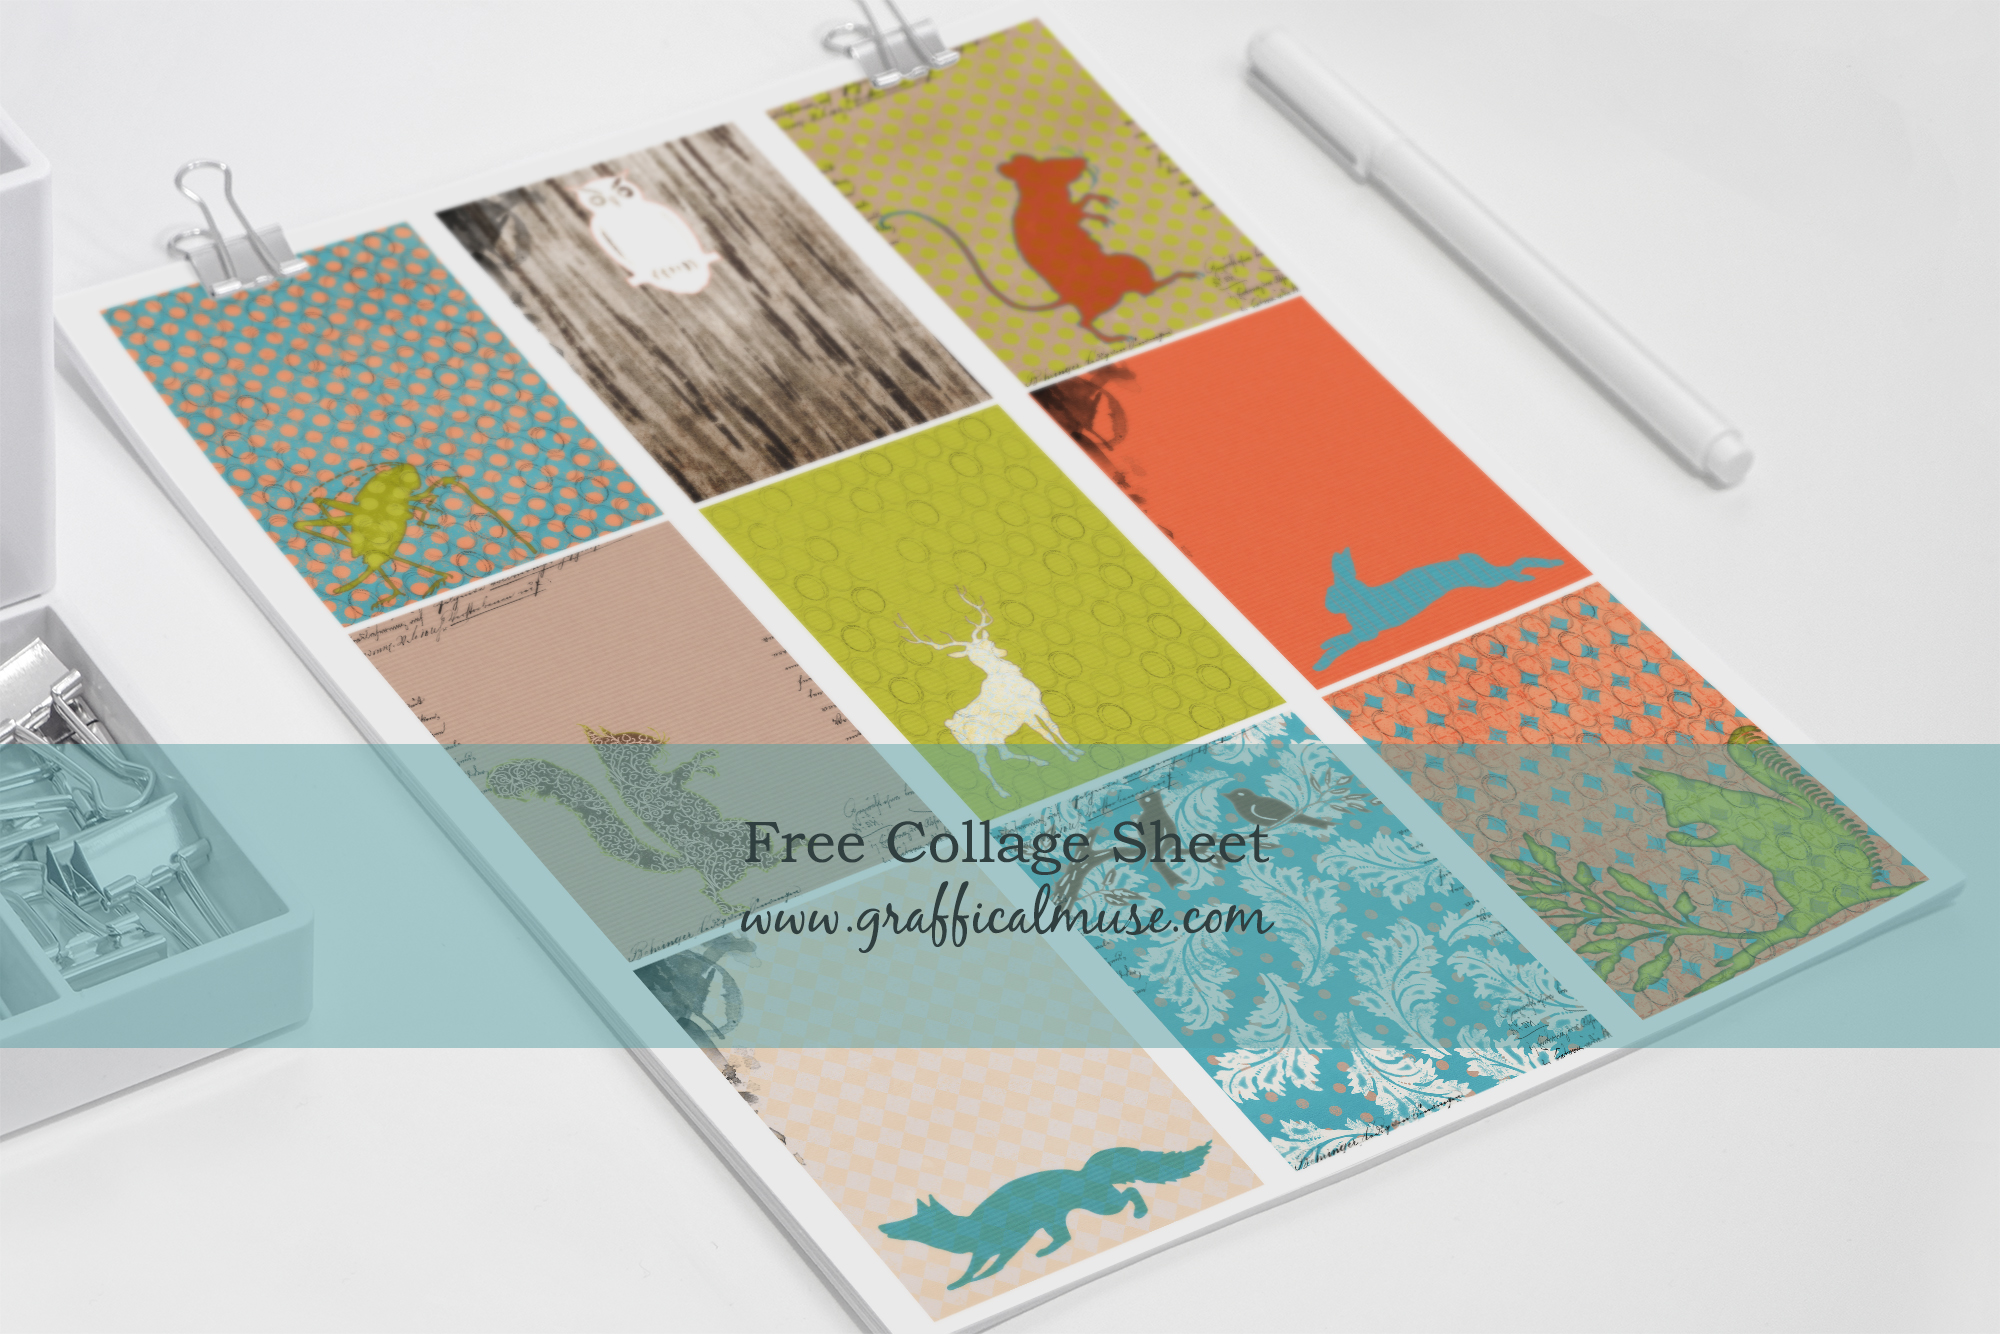 photograph relating to Free Printable Collage Sheets identify Collage Sheets Archives - The Graffical Muse